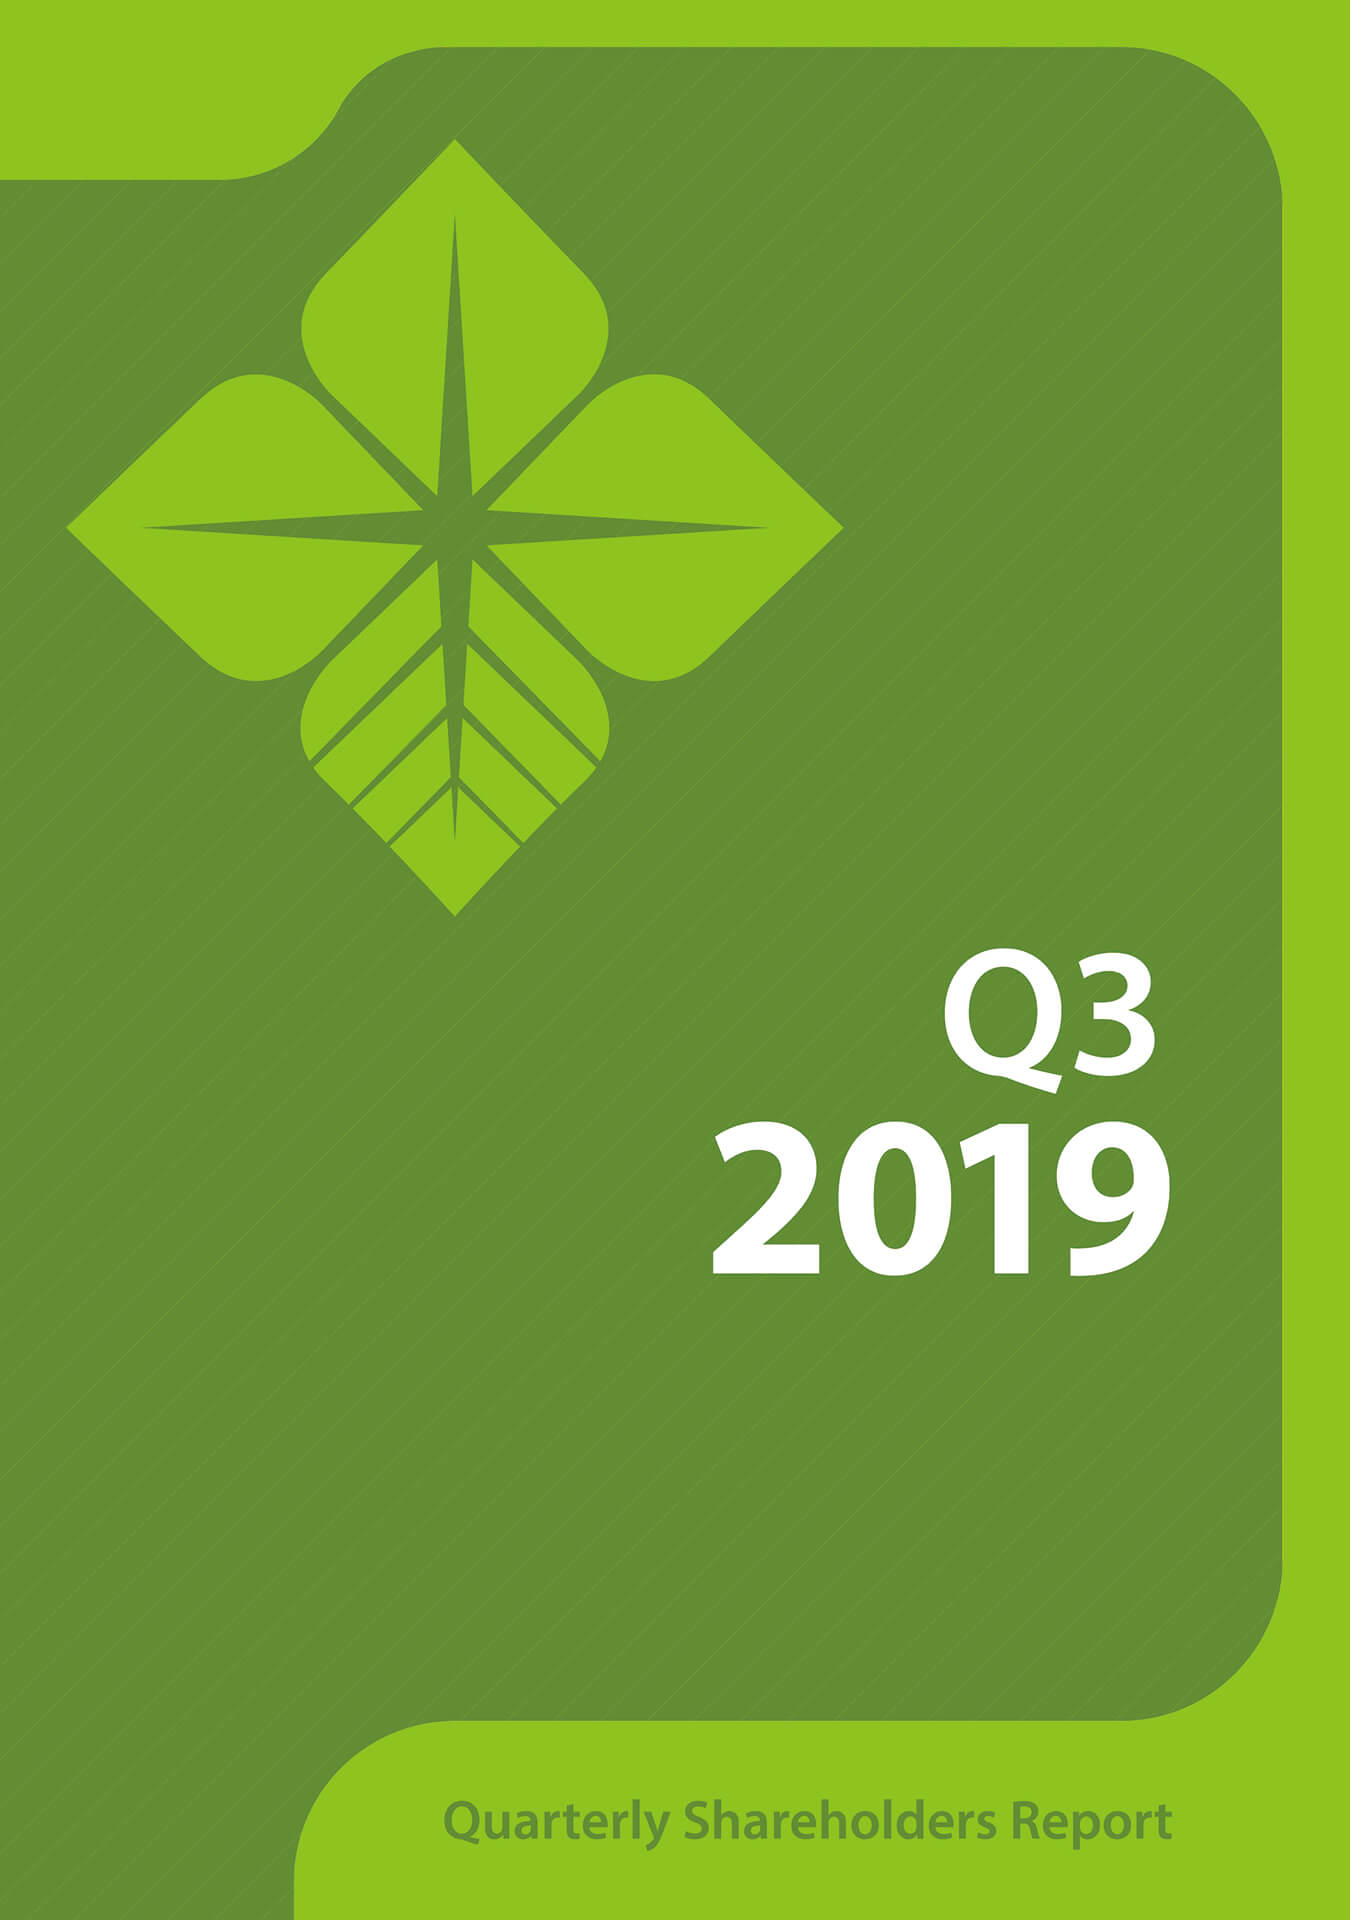 Download the Quarterly Shareholders Report (Q3 - 2019)